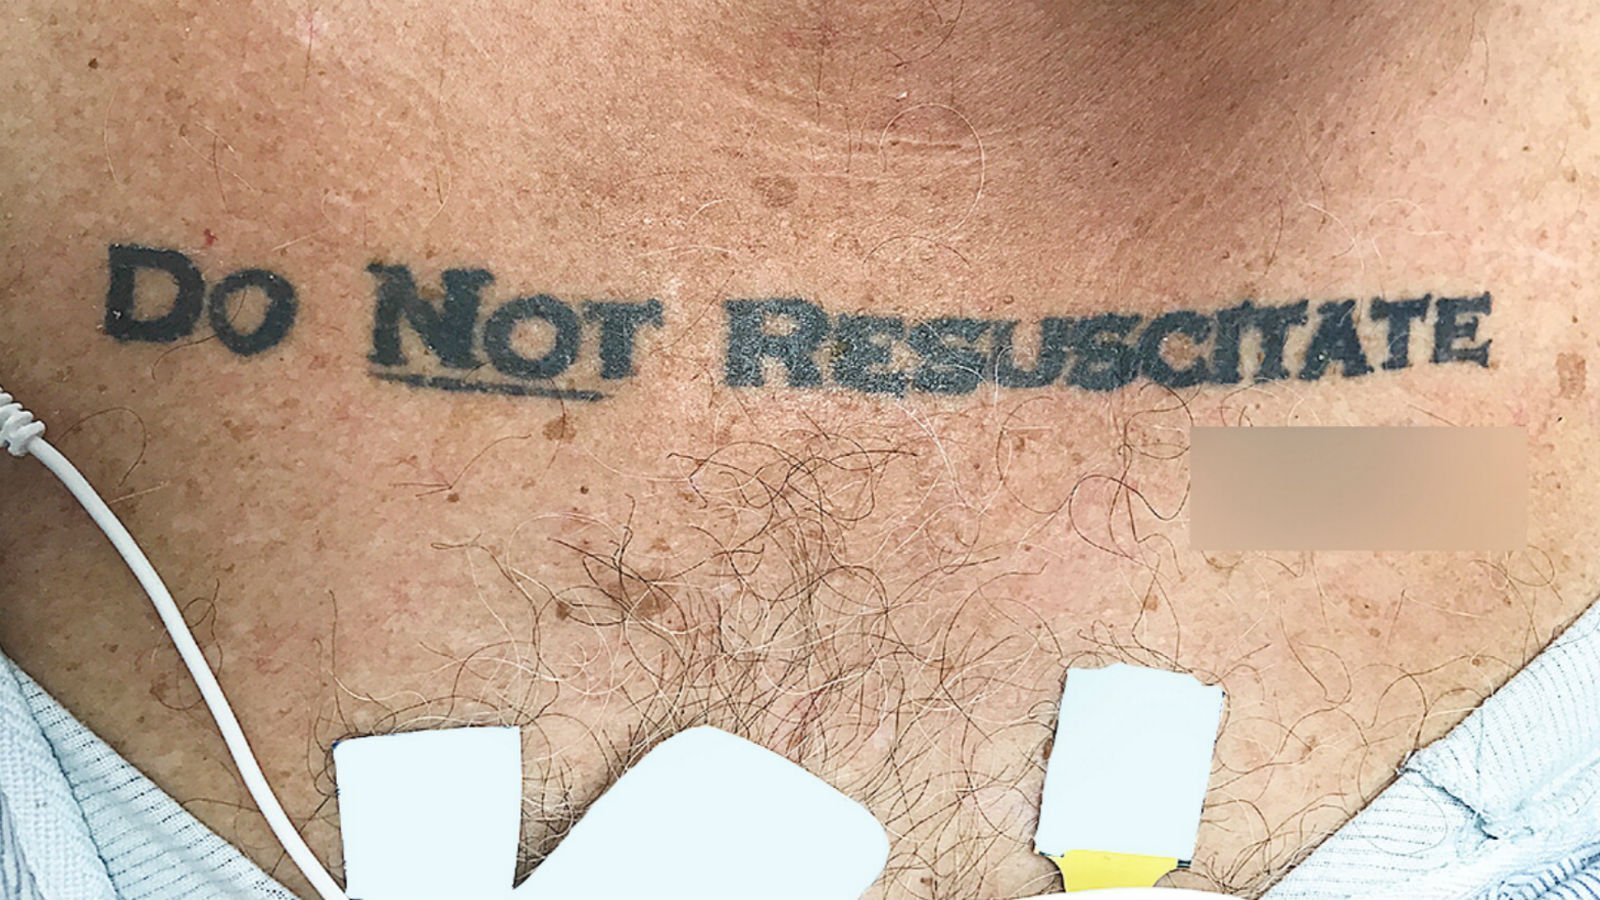 A photo provided by University of Miami shows the man's tattoo.